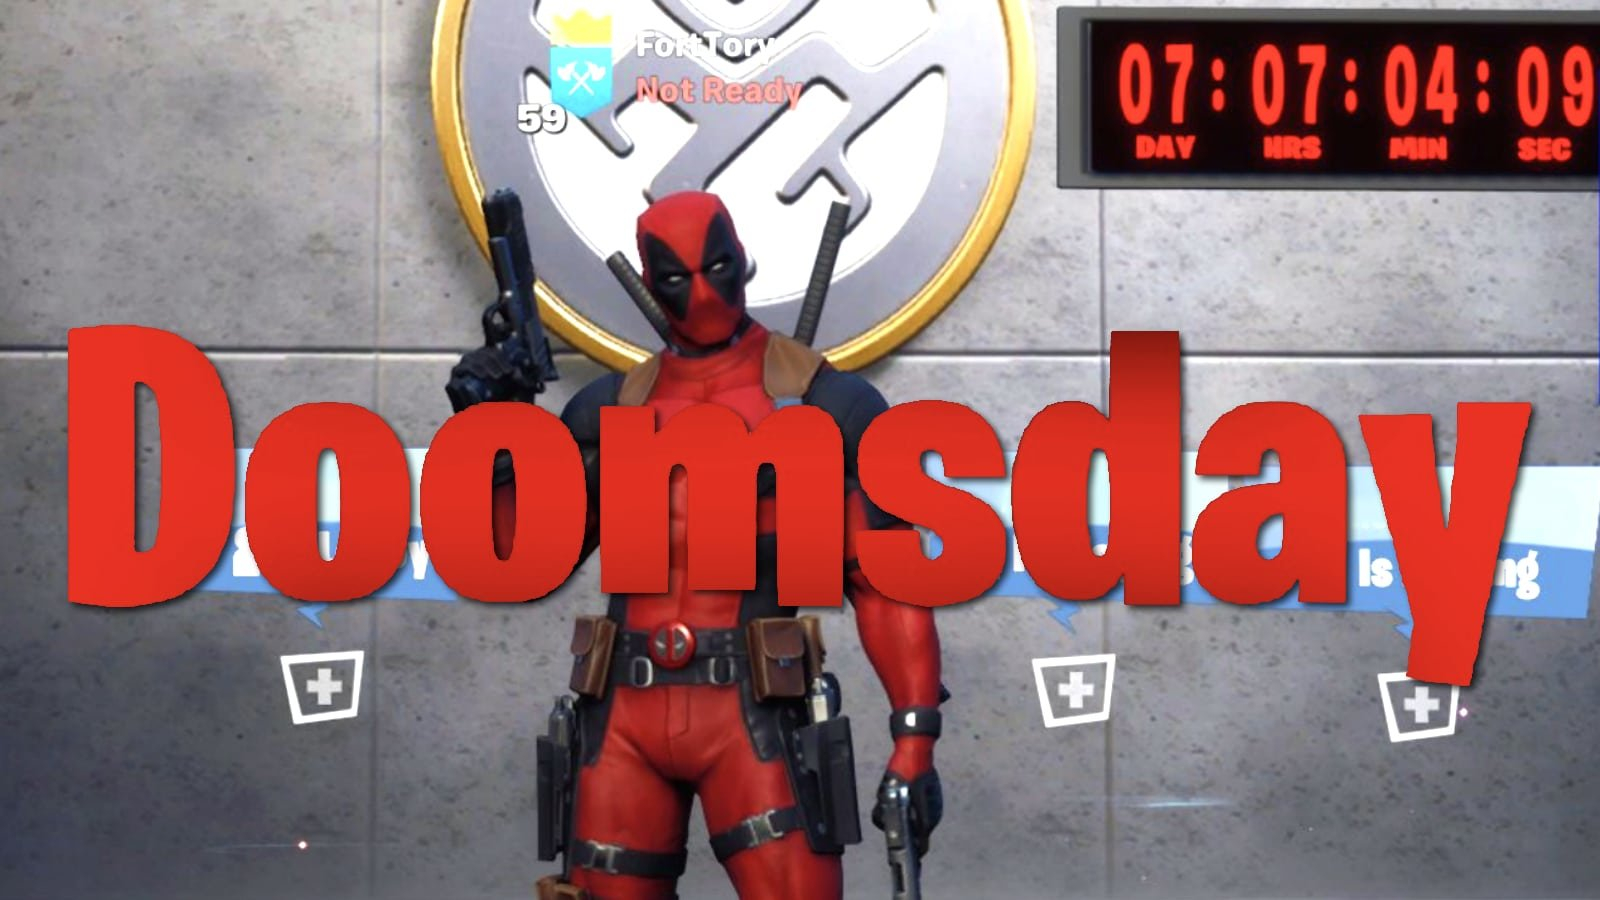 Fortnite Doomsday Event Countdown Reveals Season 2 End Date Short Timer Military Countdown